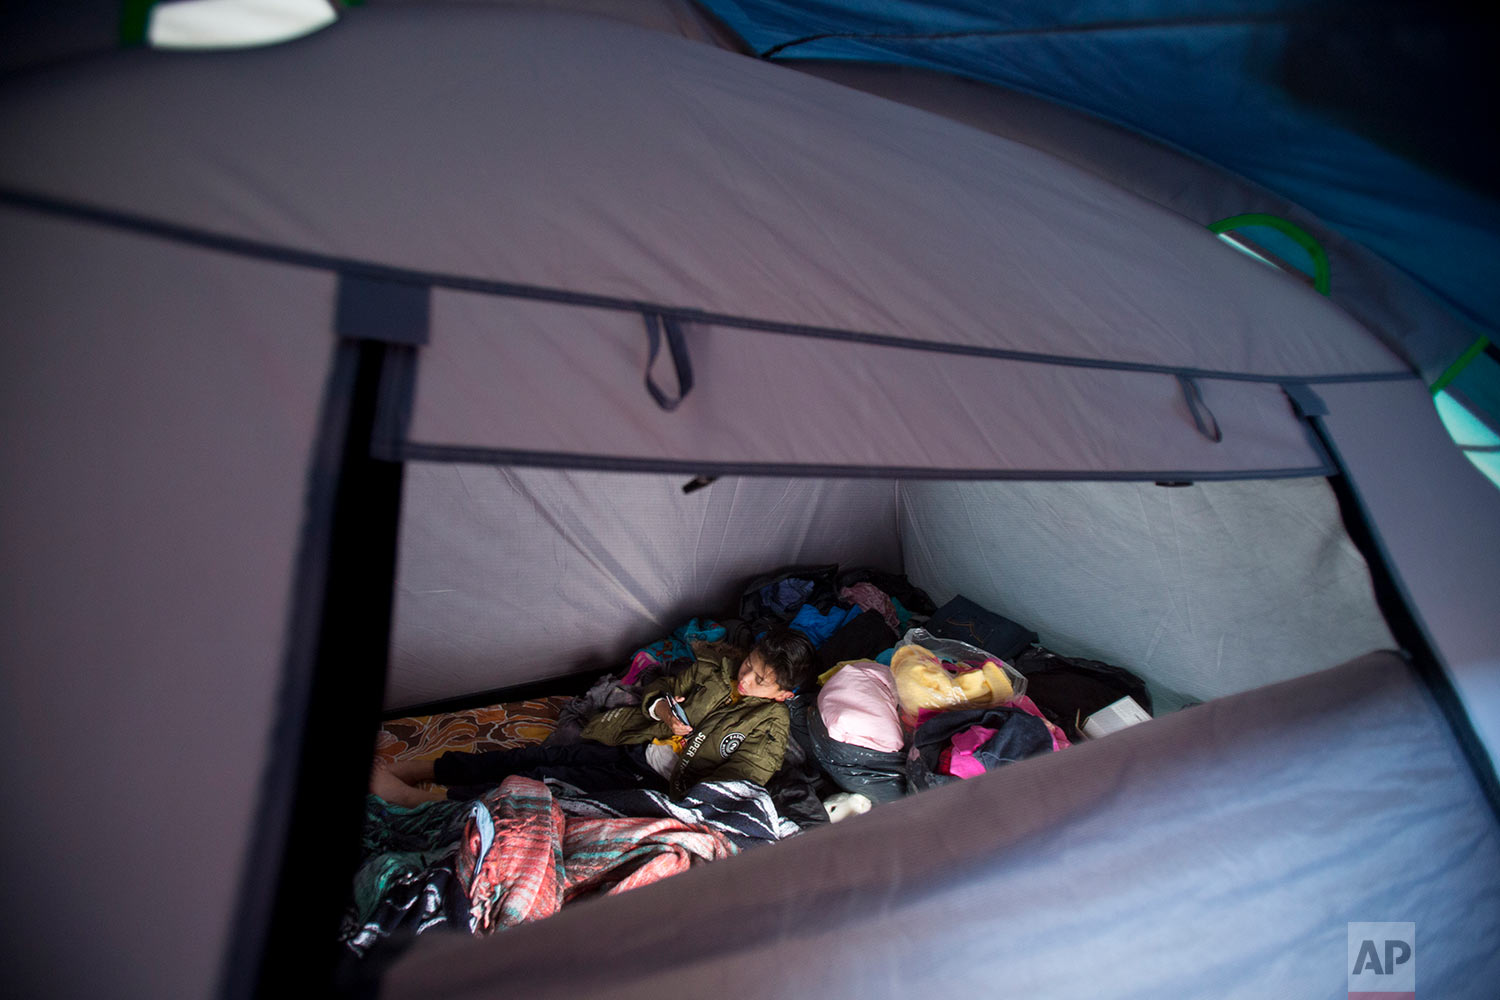 In this March 13, 2018 photo, 7-year-old Kaled Haebran Rivera watches videos on a cell phone inside the tent where he lives with his family outside earthquake-damaged Independencia 18 in Mexico City. (AP Photo/Rebecca Blackwell)